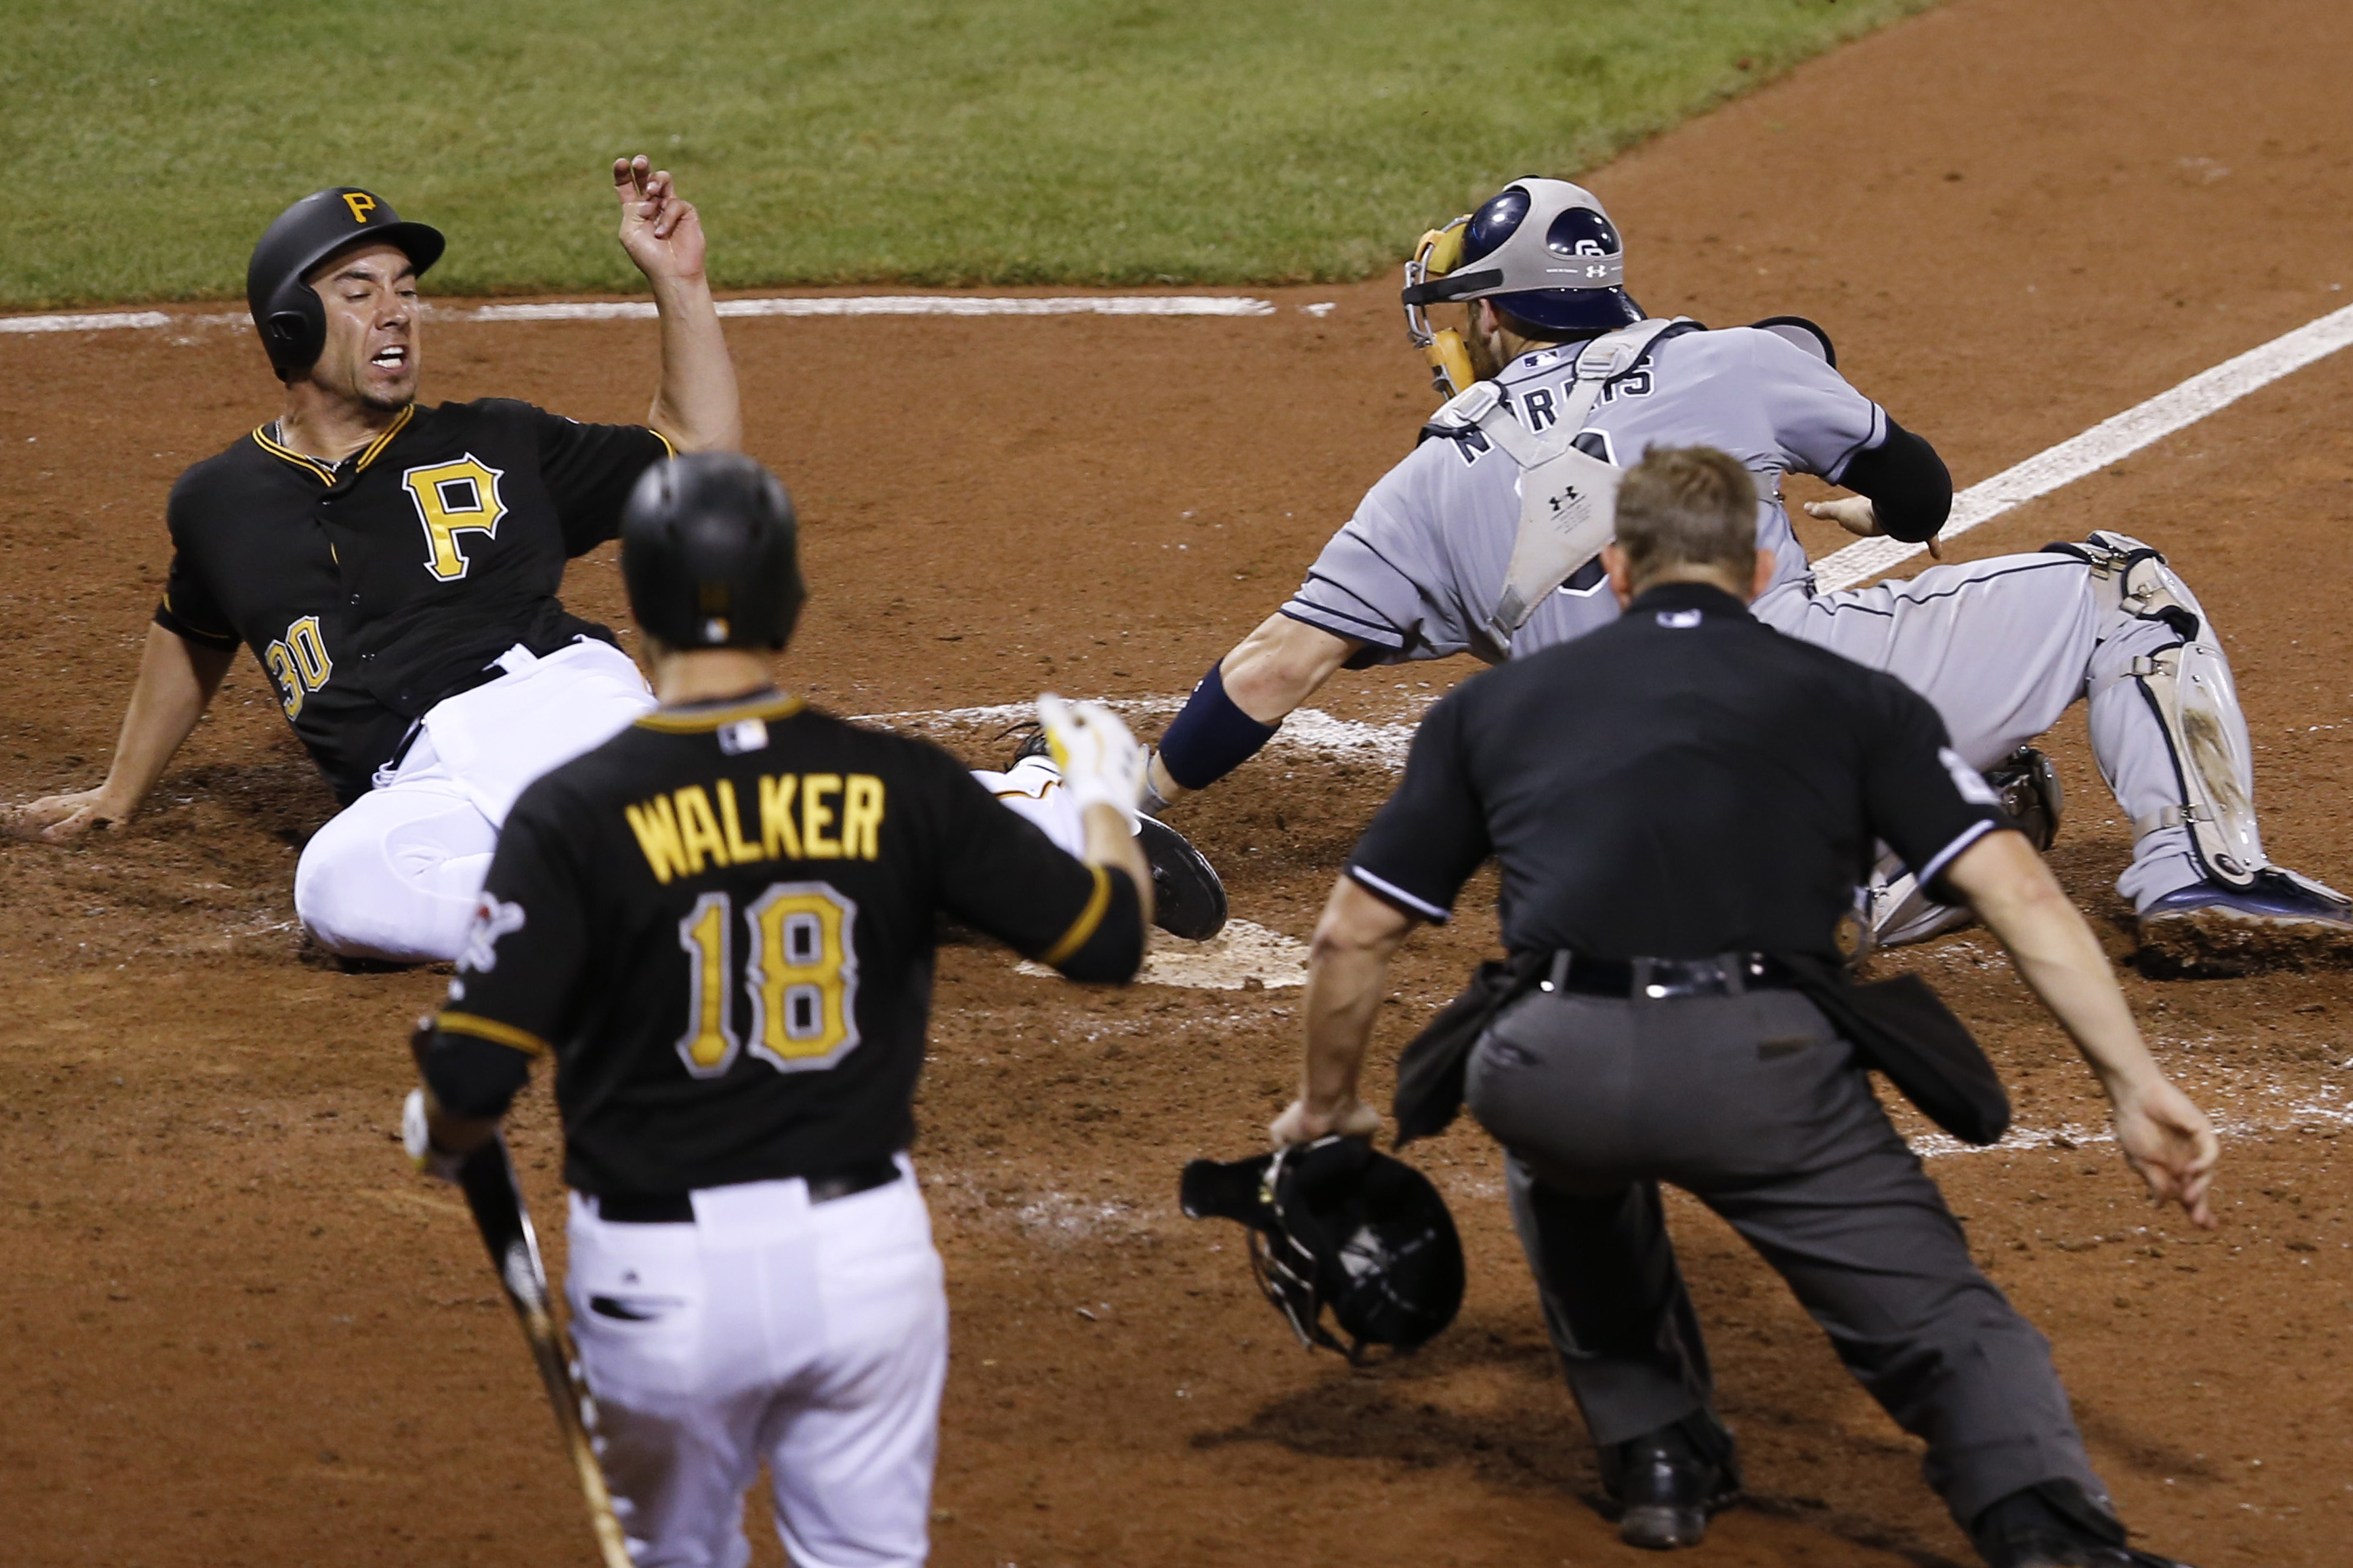 Pittsburgh Pirates' Travis Ishikawa, left, scores on a hit by Gregory Polanco as San Diego Padres catcher Derek Norris reaches to tag him in the eighth inning of a baseball game, Wednesday, July 8, 2015, in Pittsburgh. Neil Walker (18) and home plate umpi